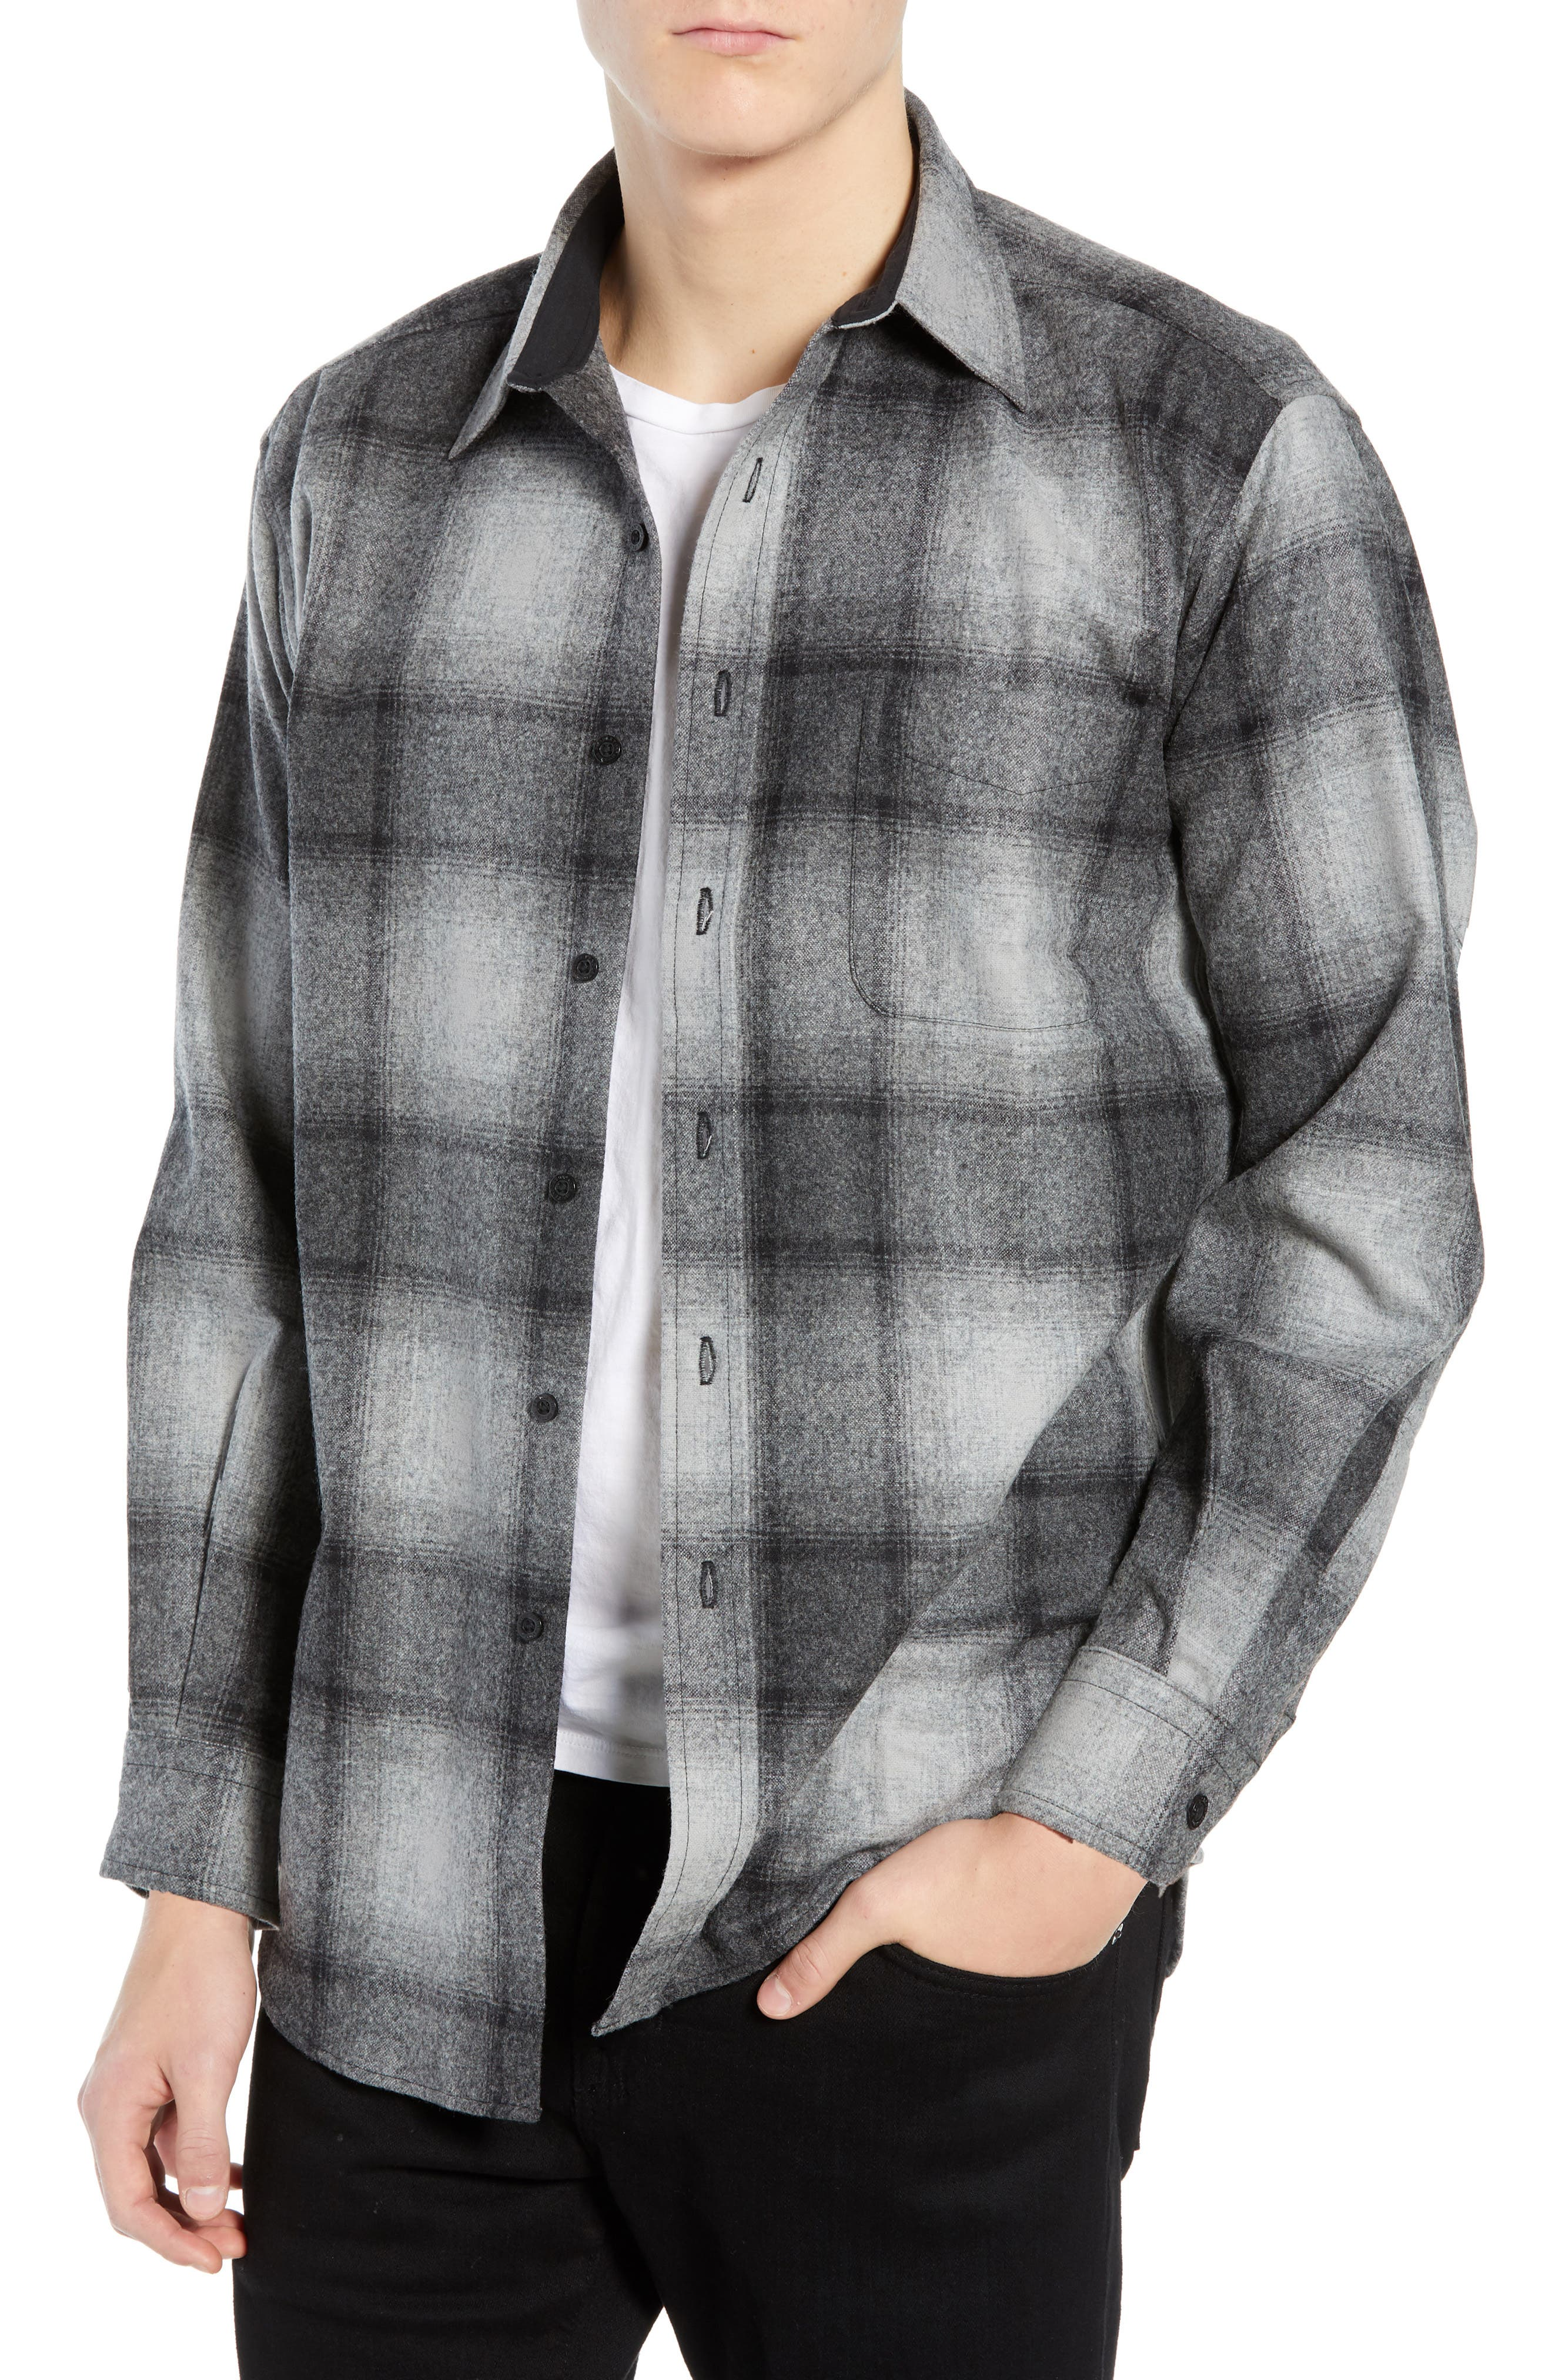 Lodge Wool Flannel Shirt,                             Main thumbnail 1, color,                             BLACK/ GREY MIX OMBRE